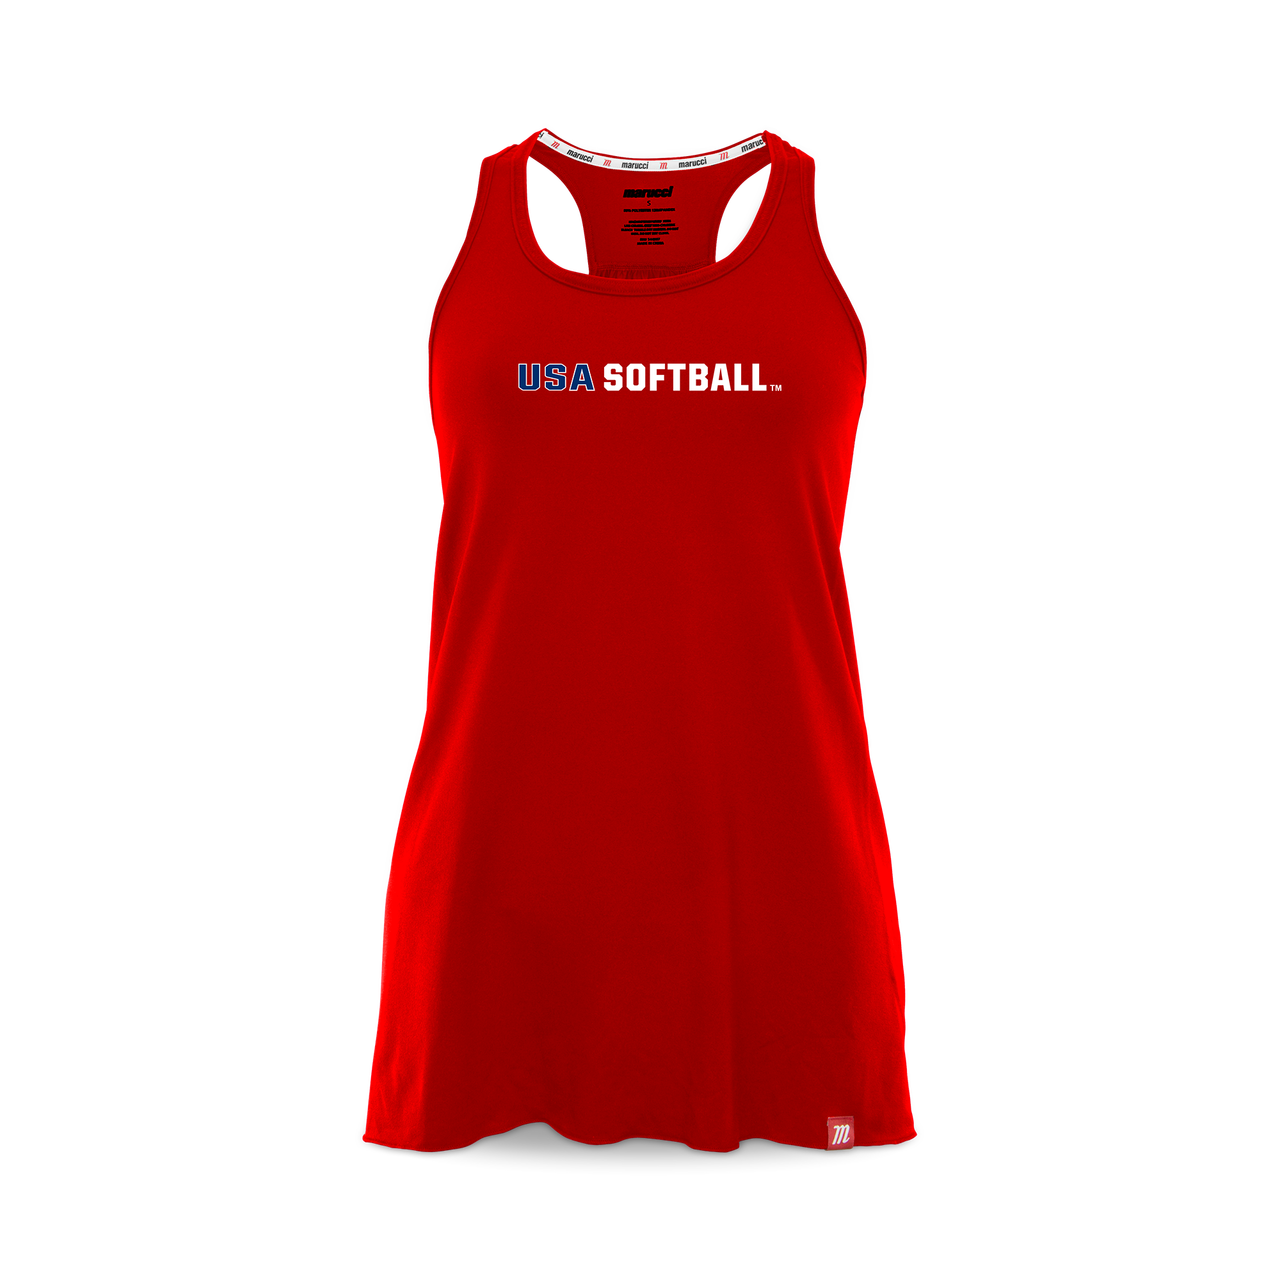 8323cd7cc28 Marucci women's racerback relaxed tank top with USA Softball printed across  the chest.